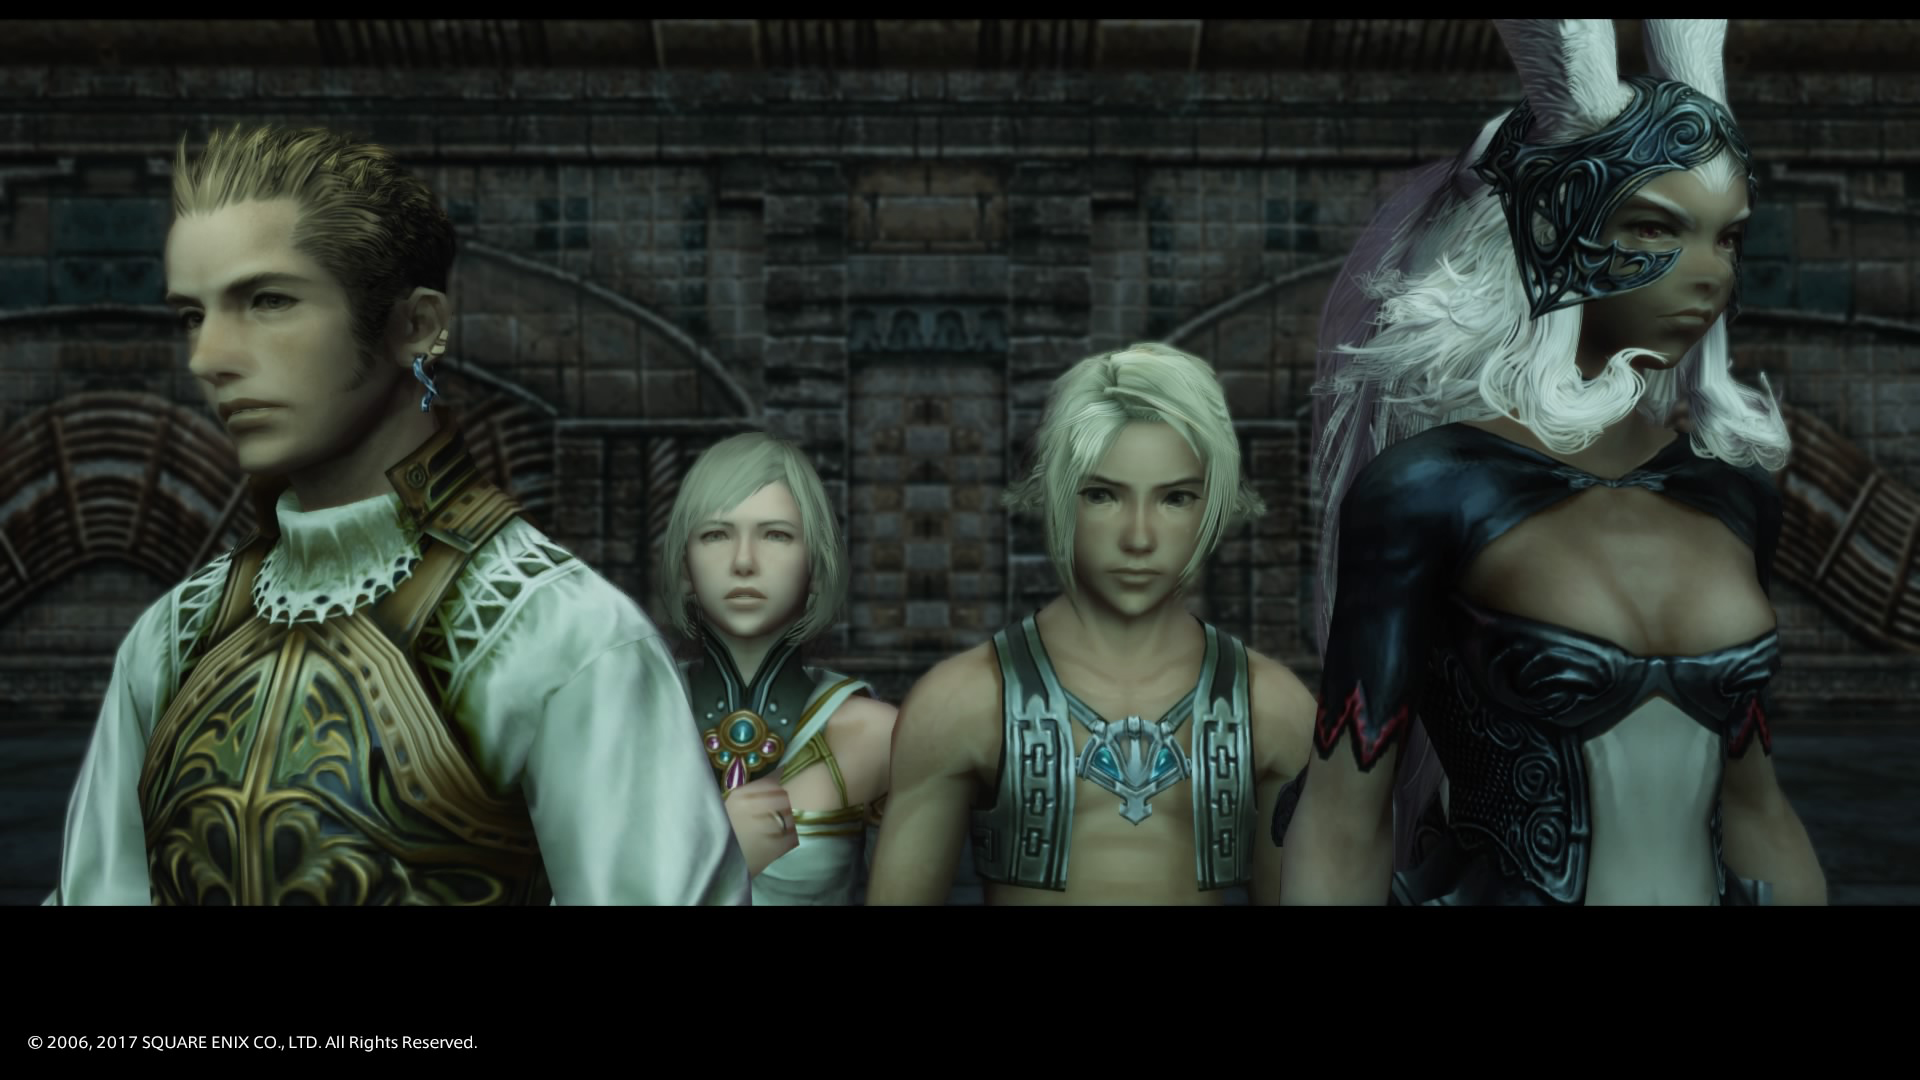 Final Fantasy Xii The Zodiac Age Revisiting A Black Sheep With A